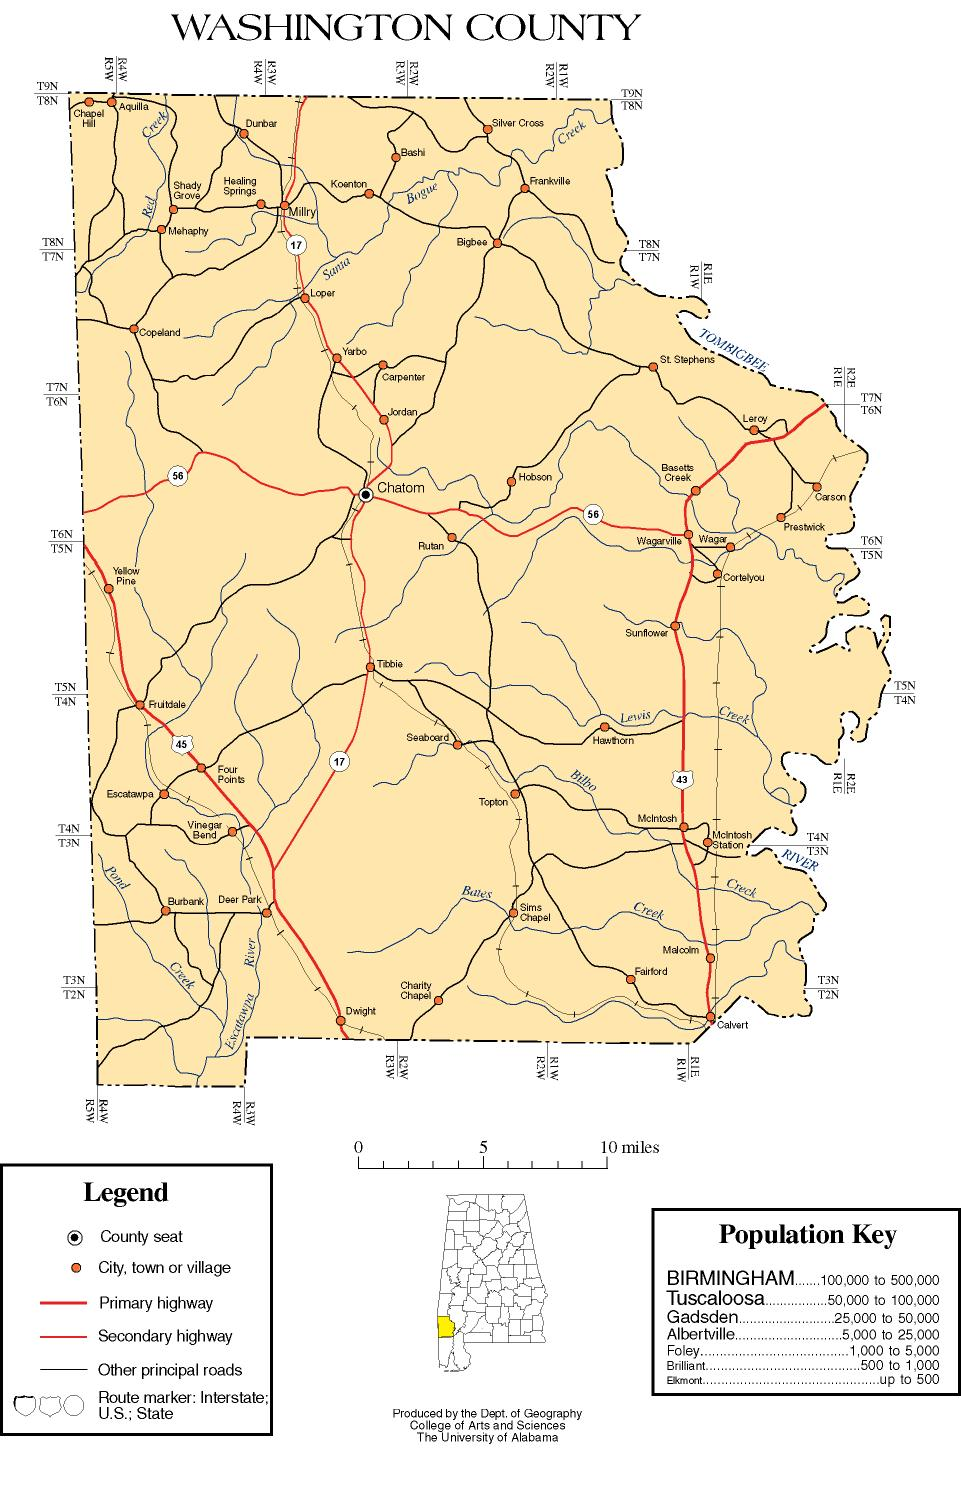 Maps of Washington County